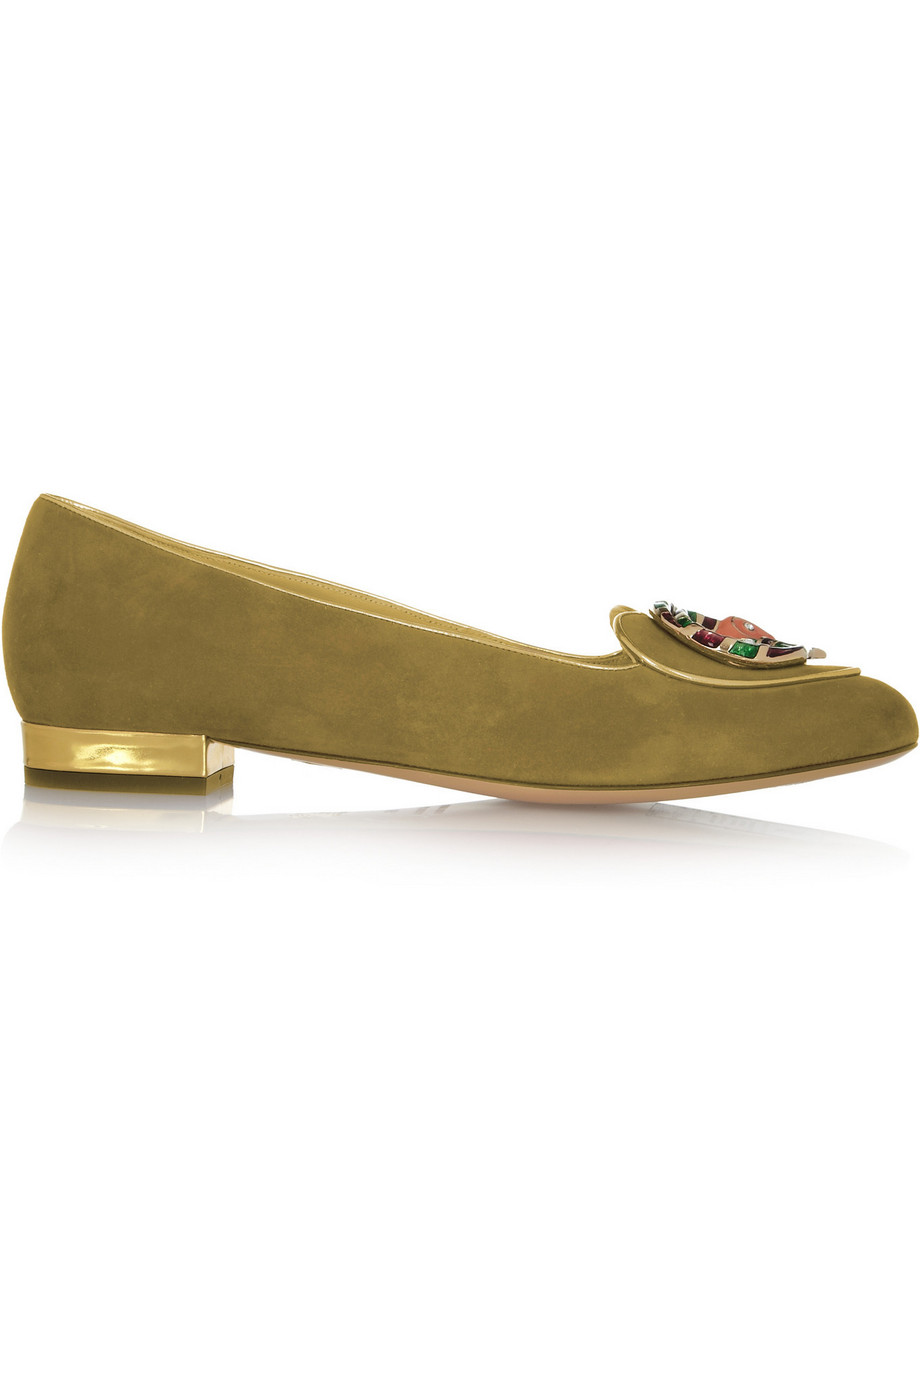 Charlotte Olympia Capricorn Suede Slippers, Green, Women's US Size: 4.5, Size: 35